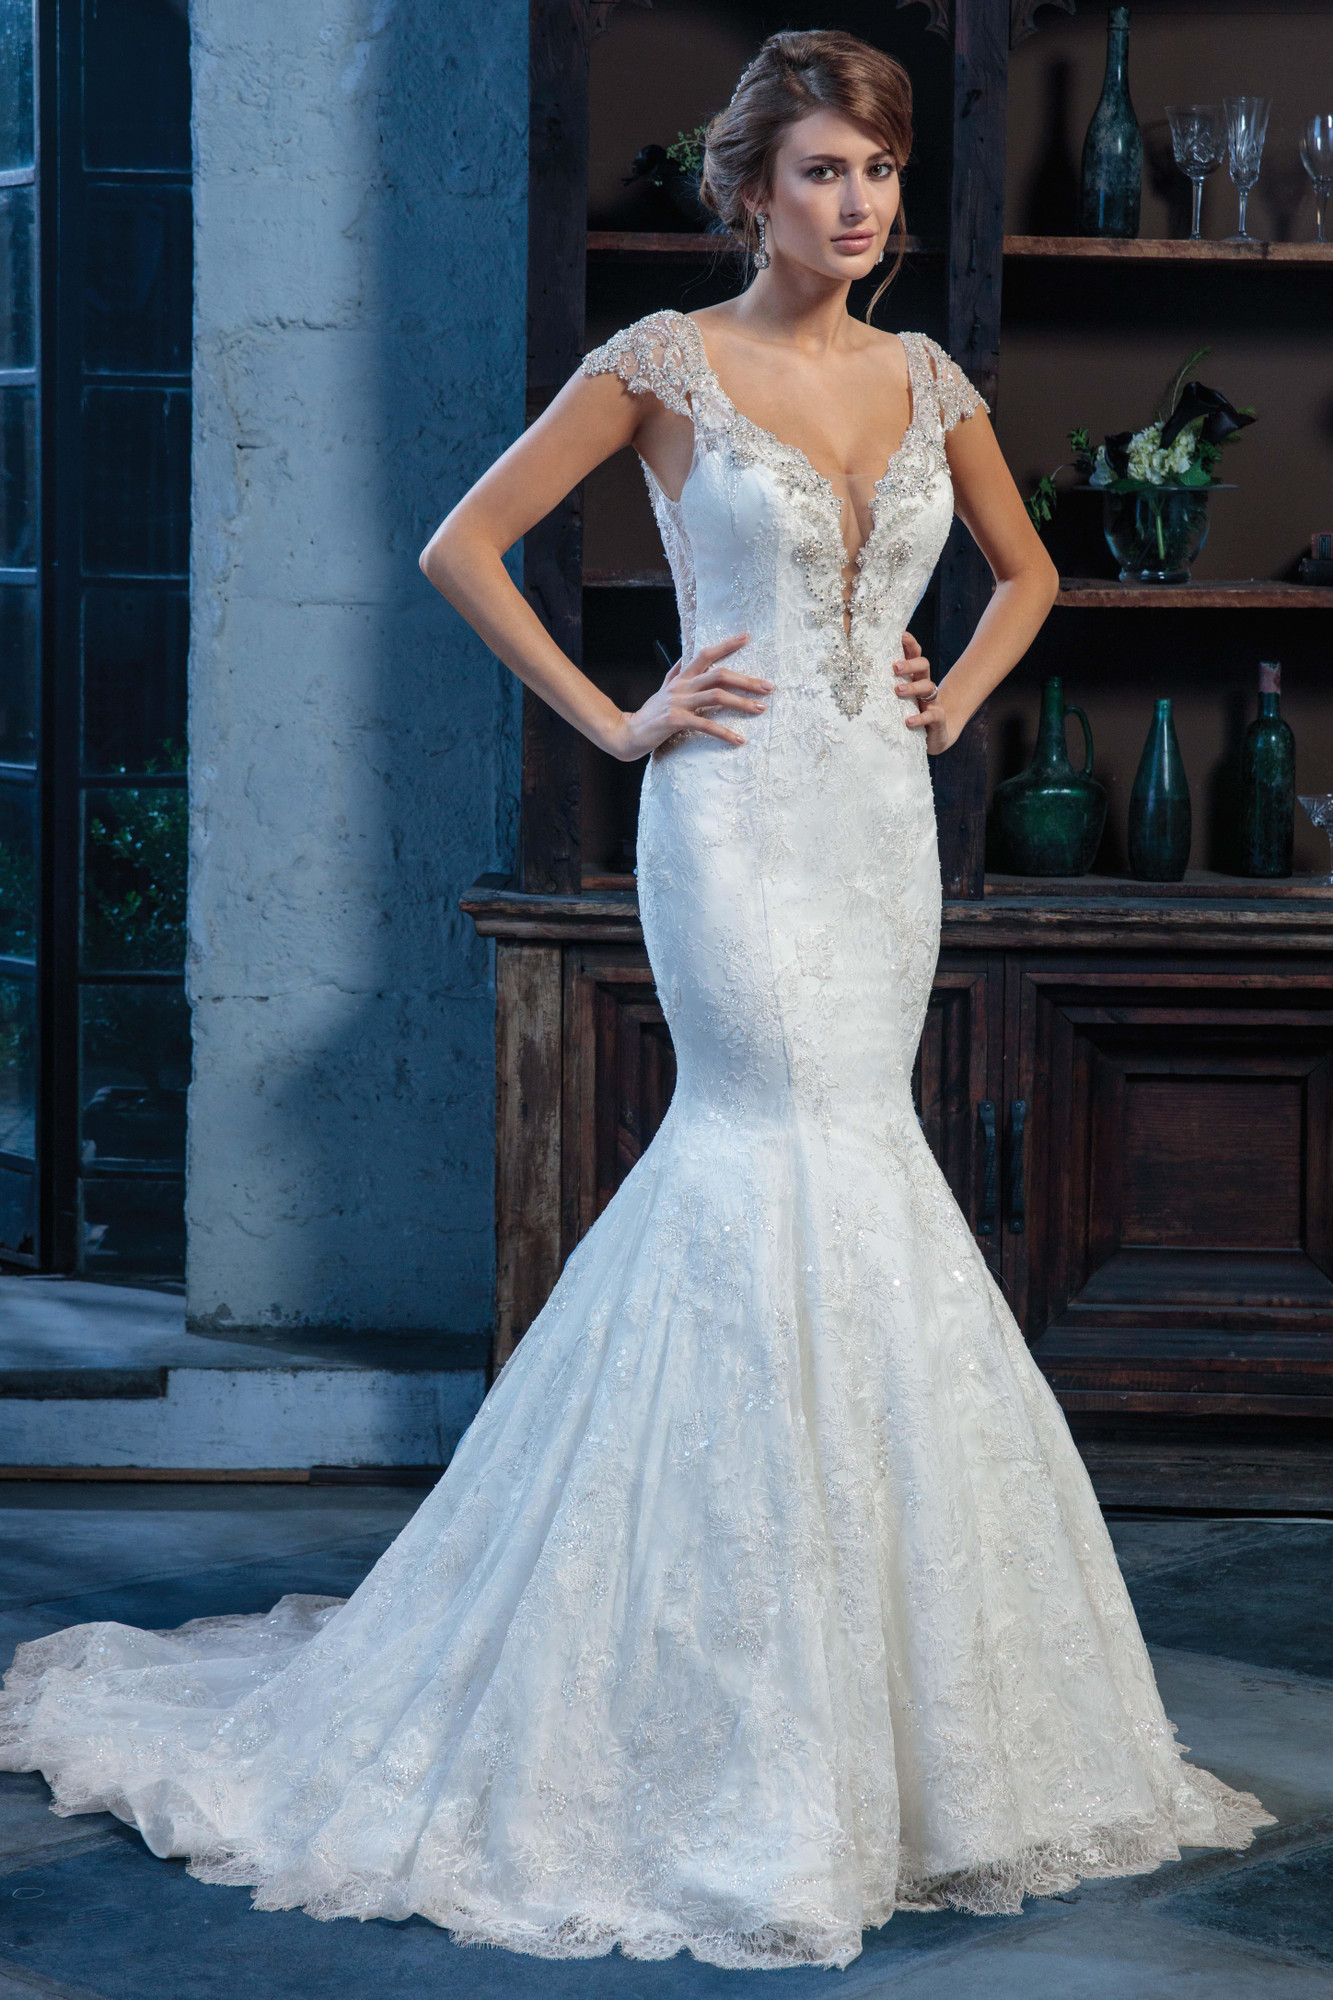 Wedding Dresses | Style - MB5016 in Ivory/Nude or Ivory Color